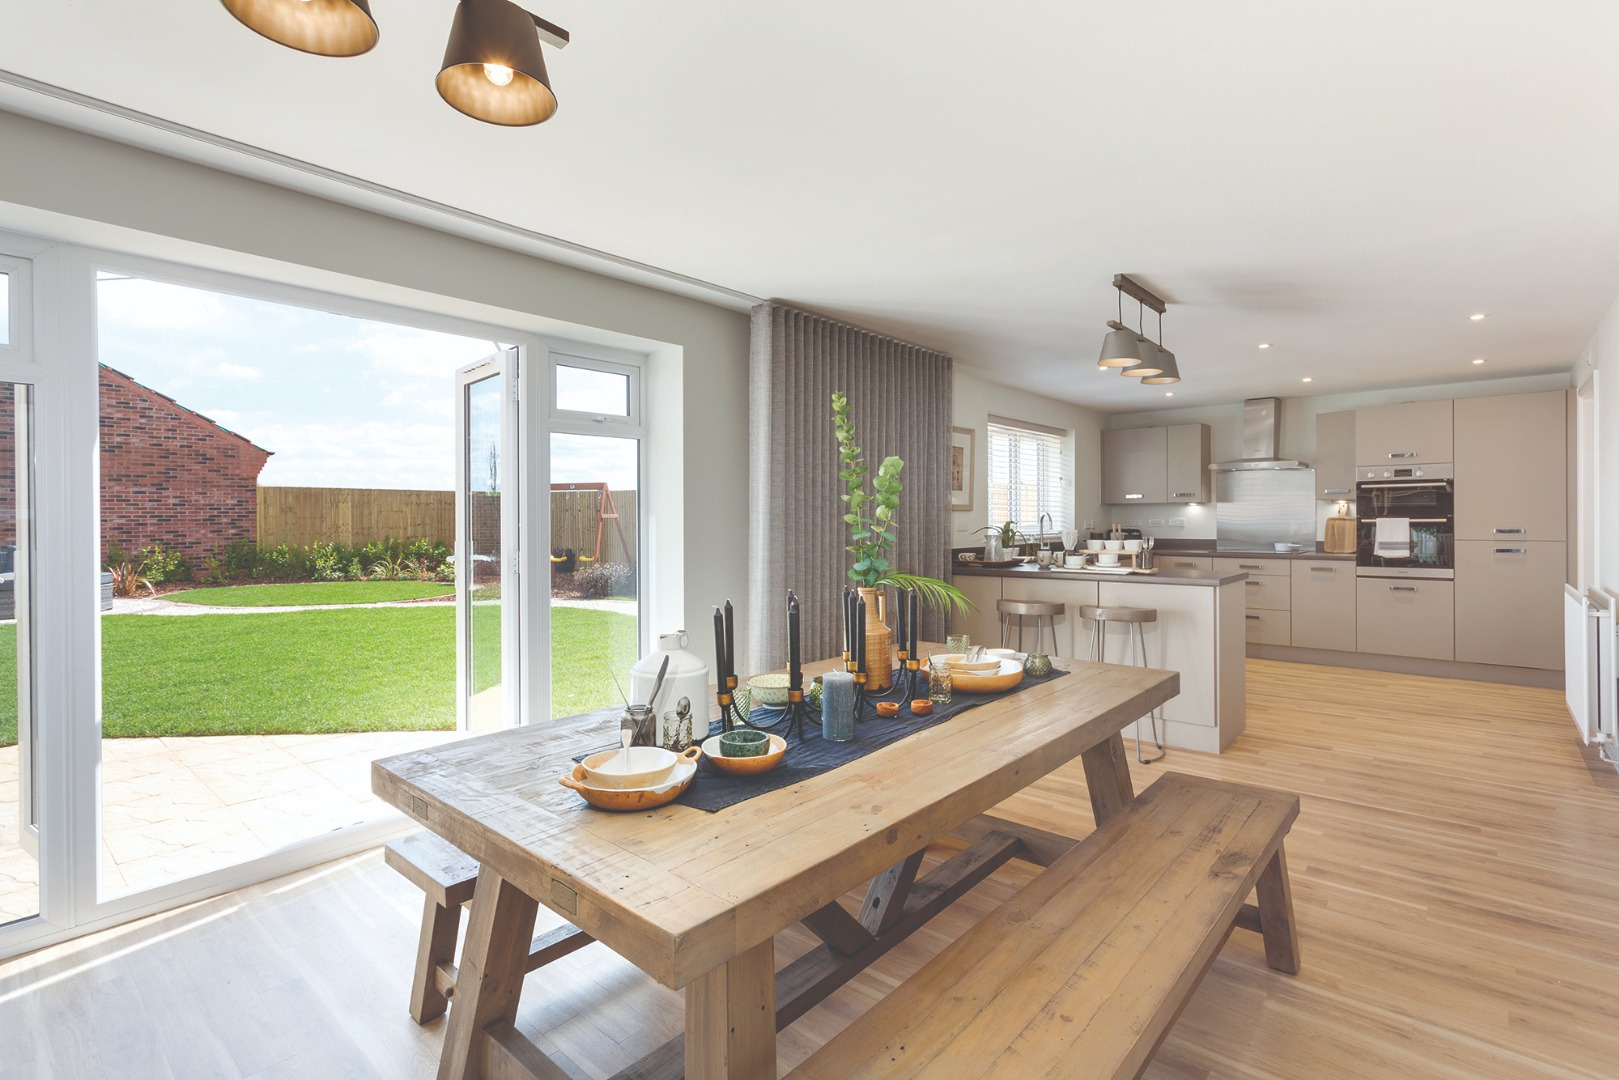 Cheshire buyers to benefit from Bovis Homes'  bumper New Year offer